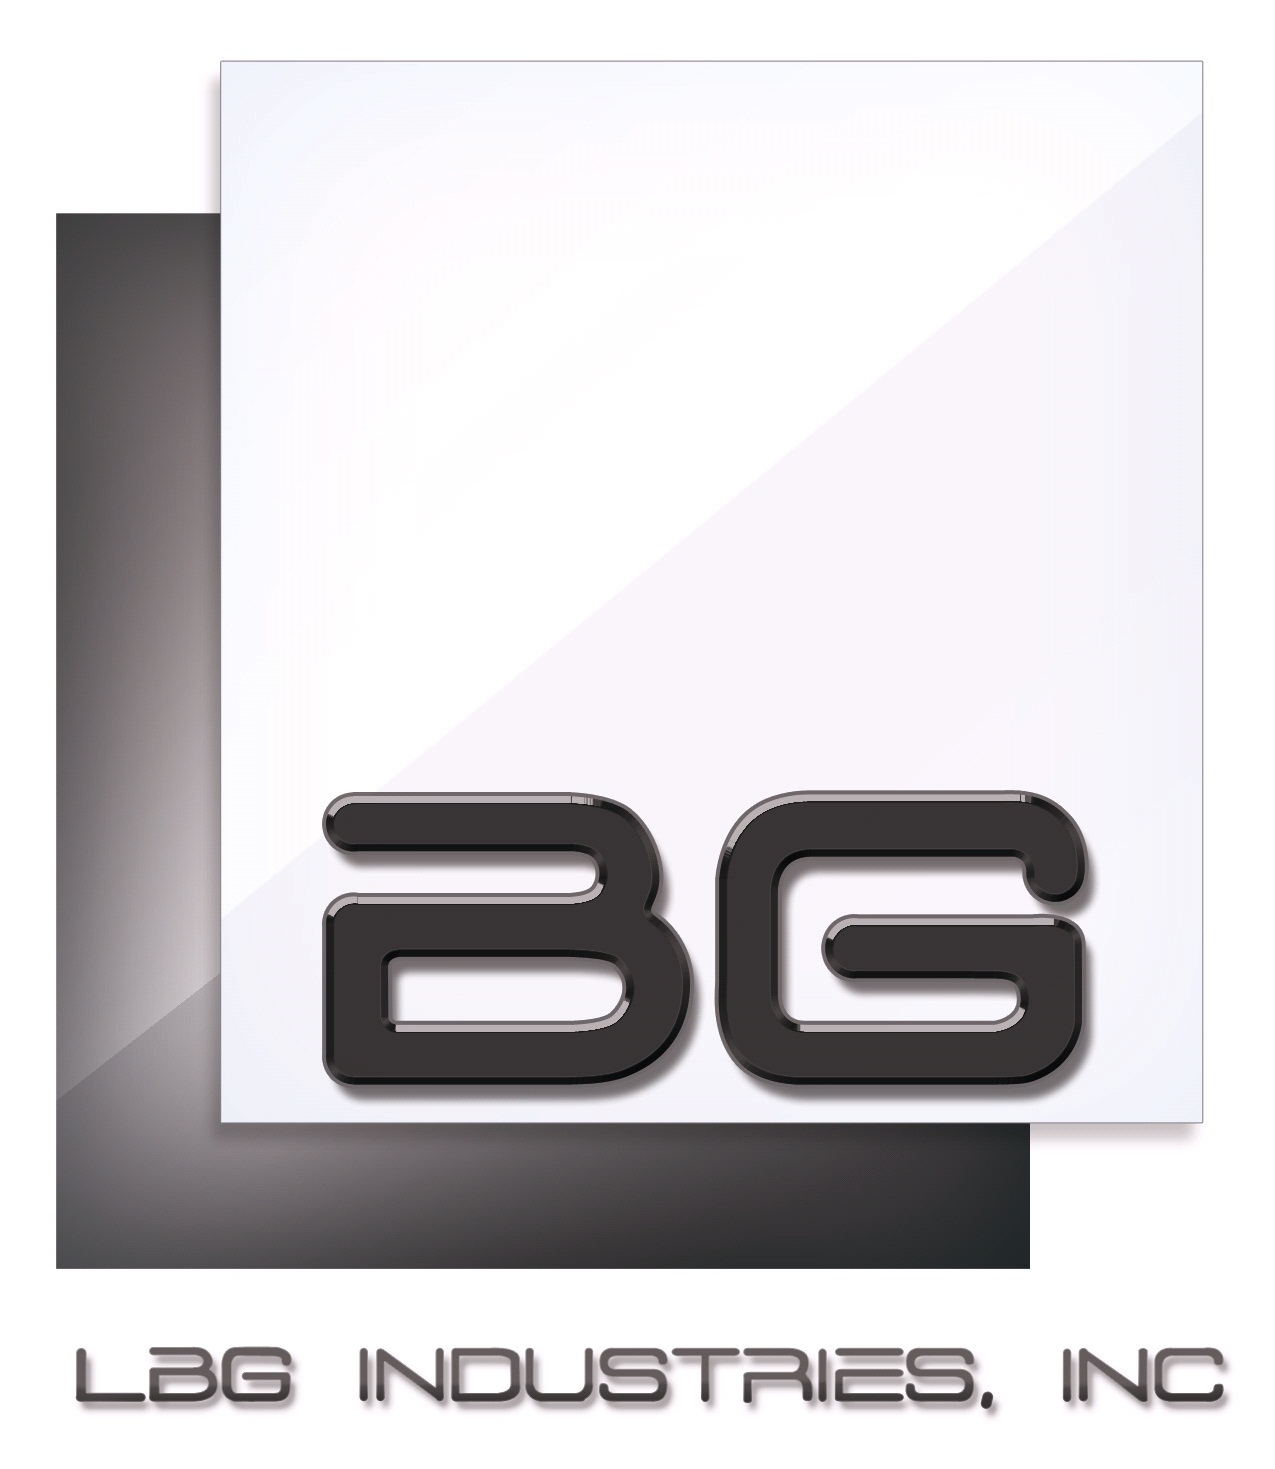 LBG Industries, Inc.